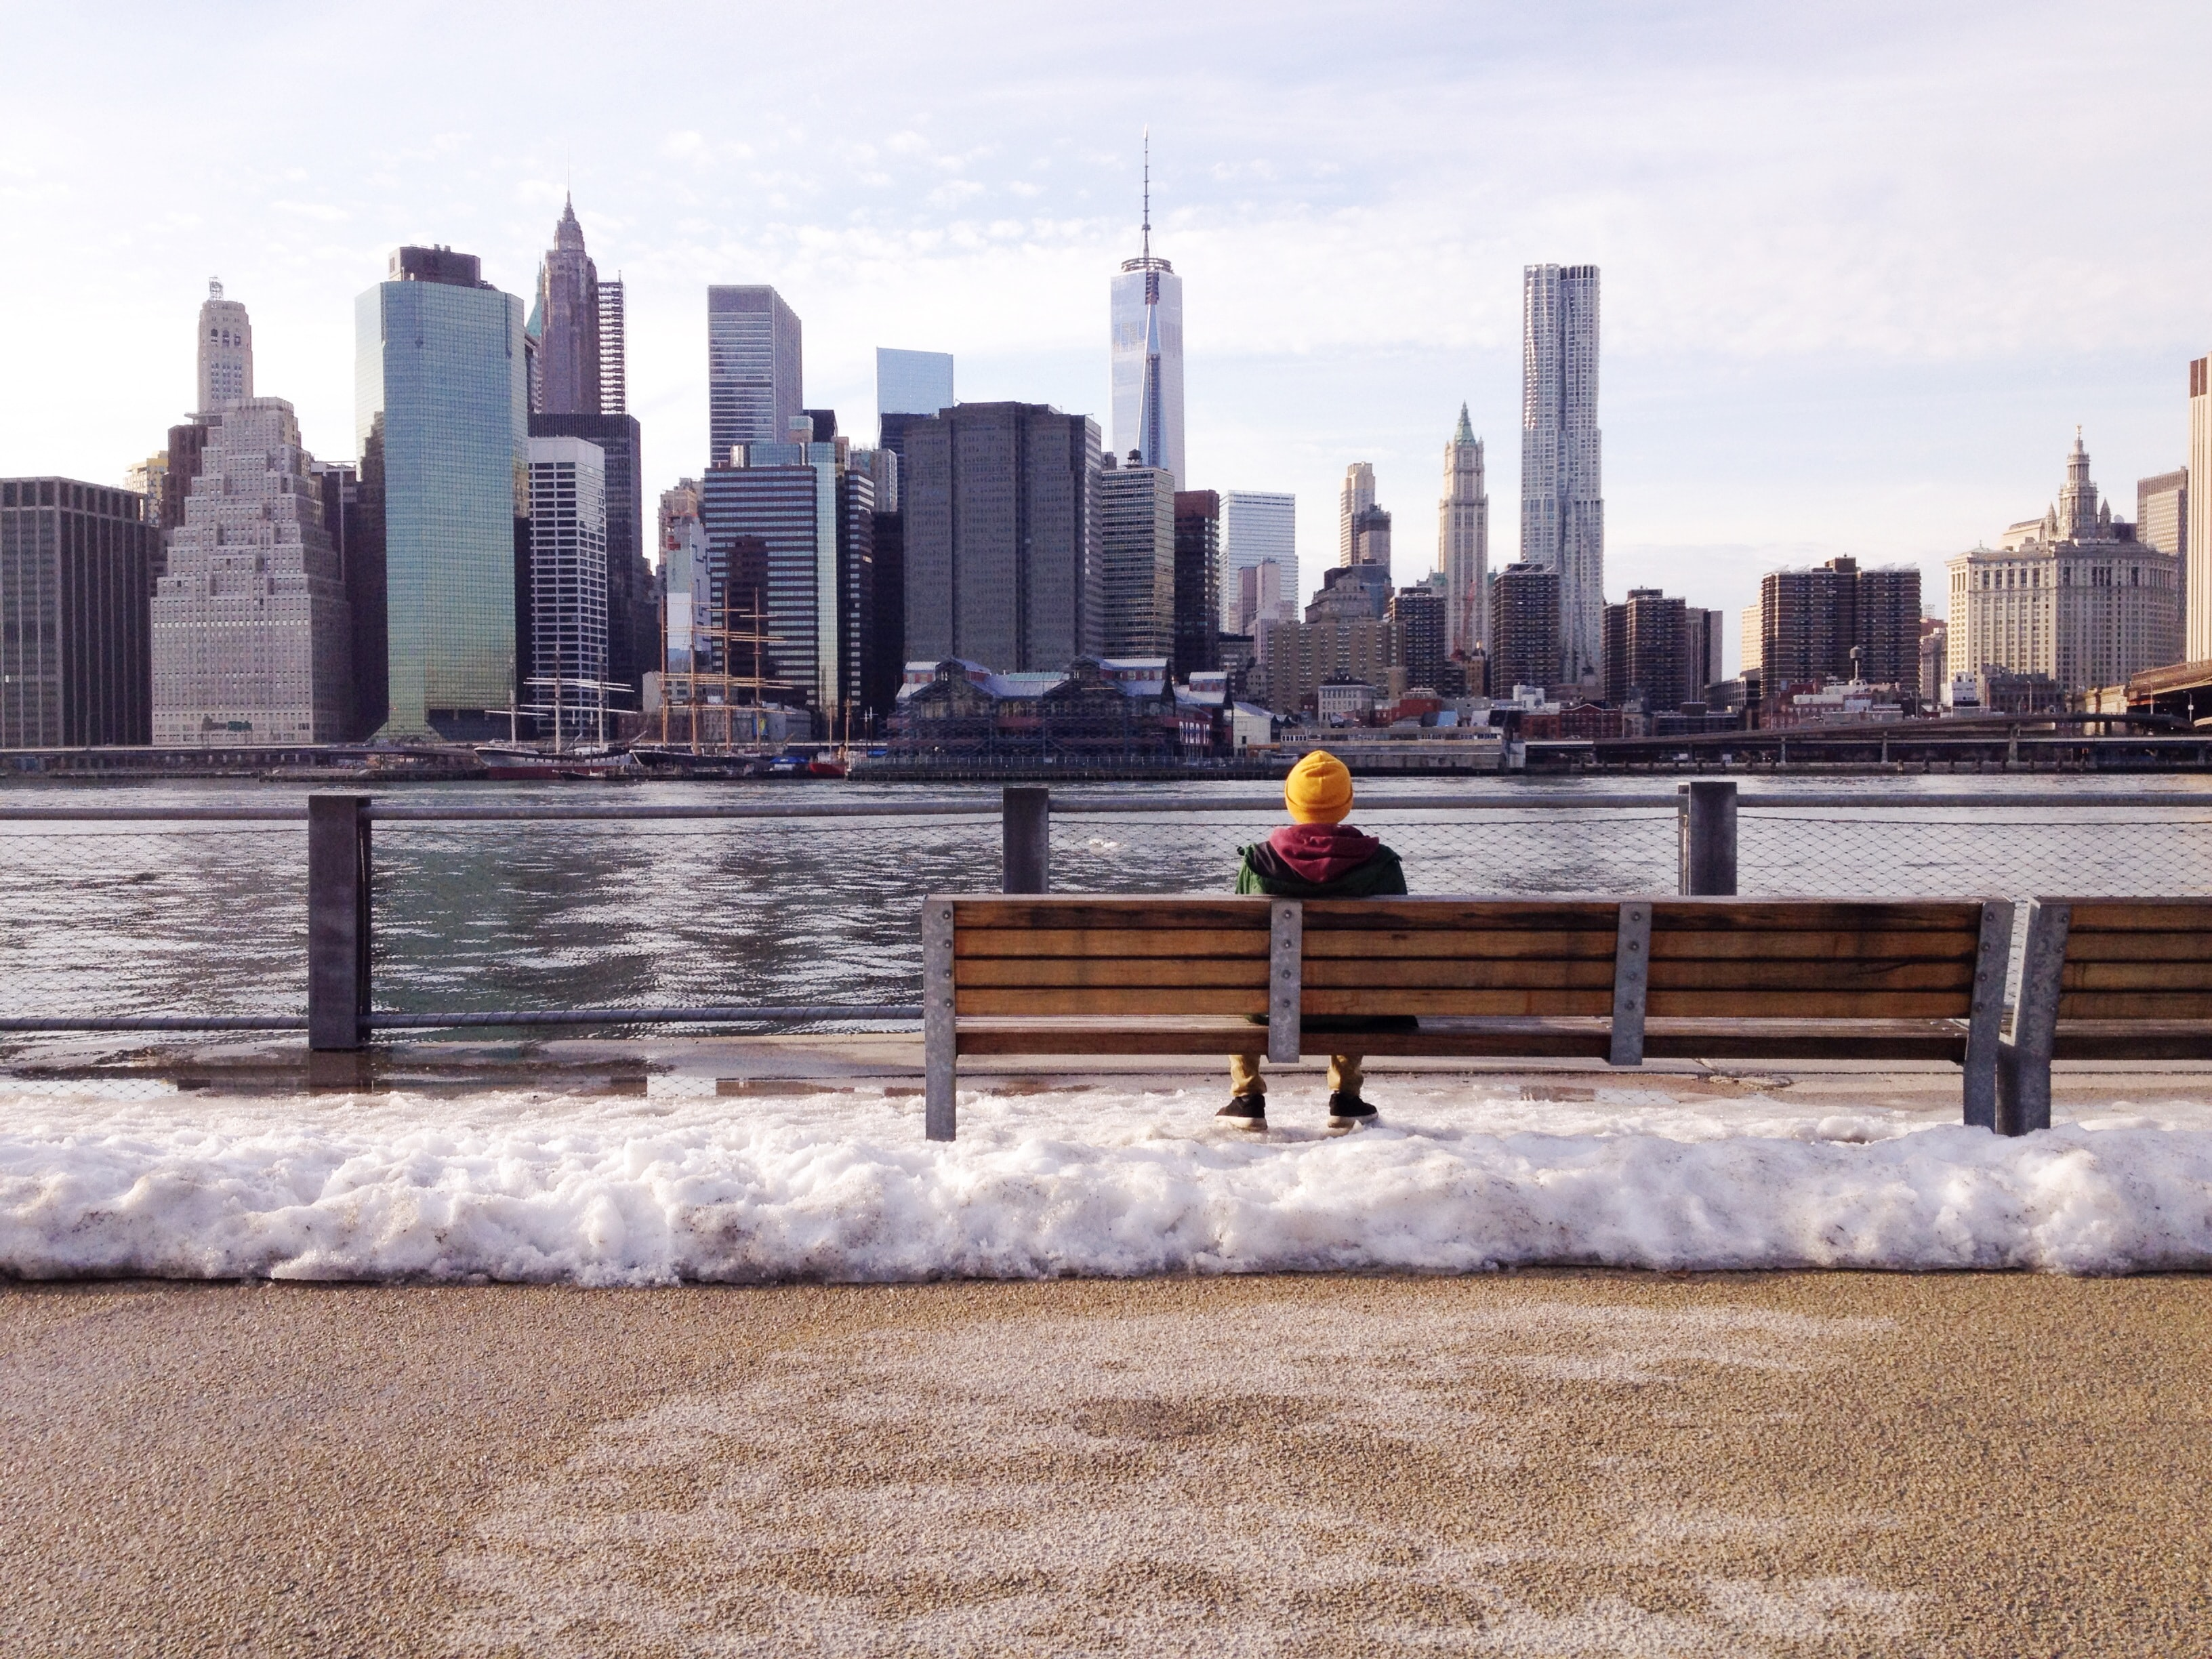 Person sits on a bench looking at the water and skyscrapers of New York City